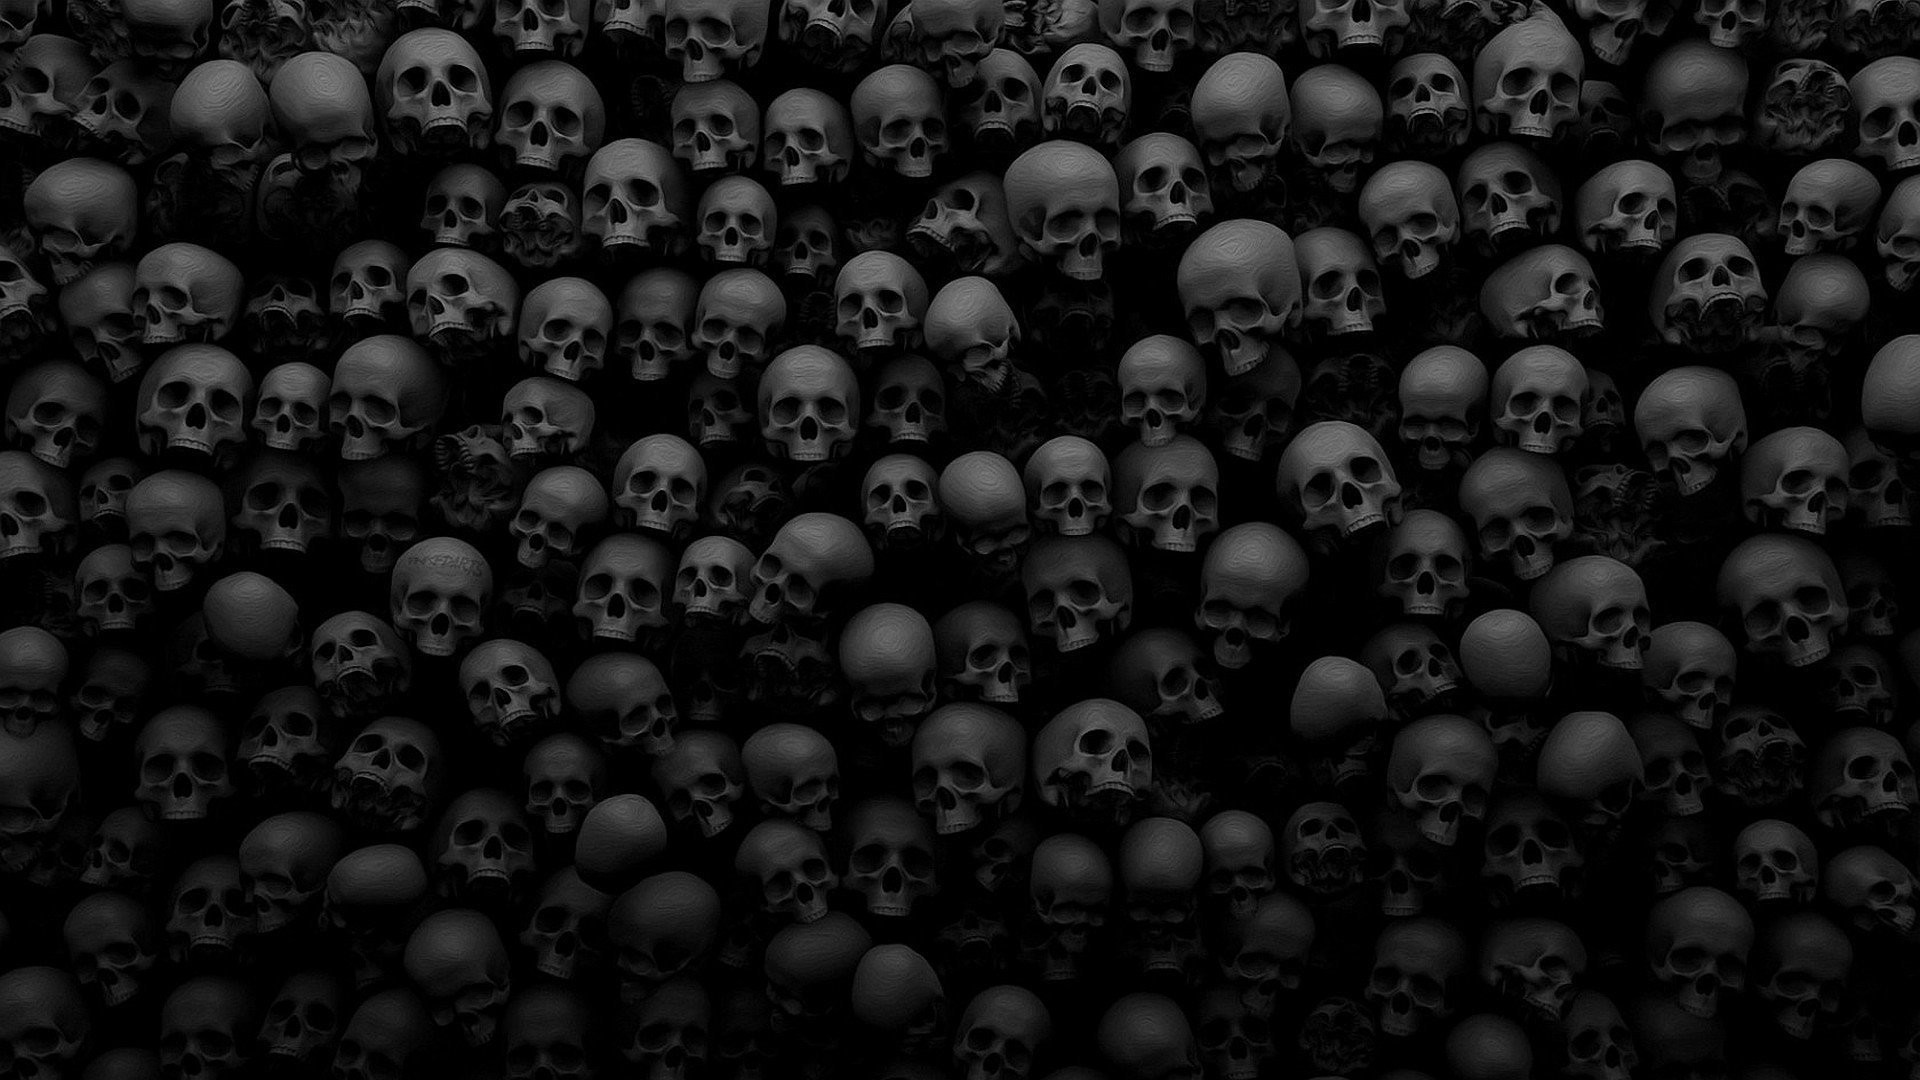 3d Cartoon Wallpapers Download Skull Background 50 Images